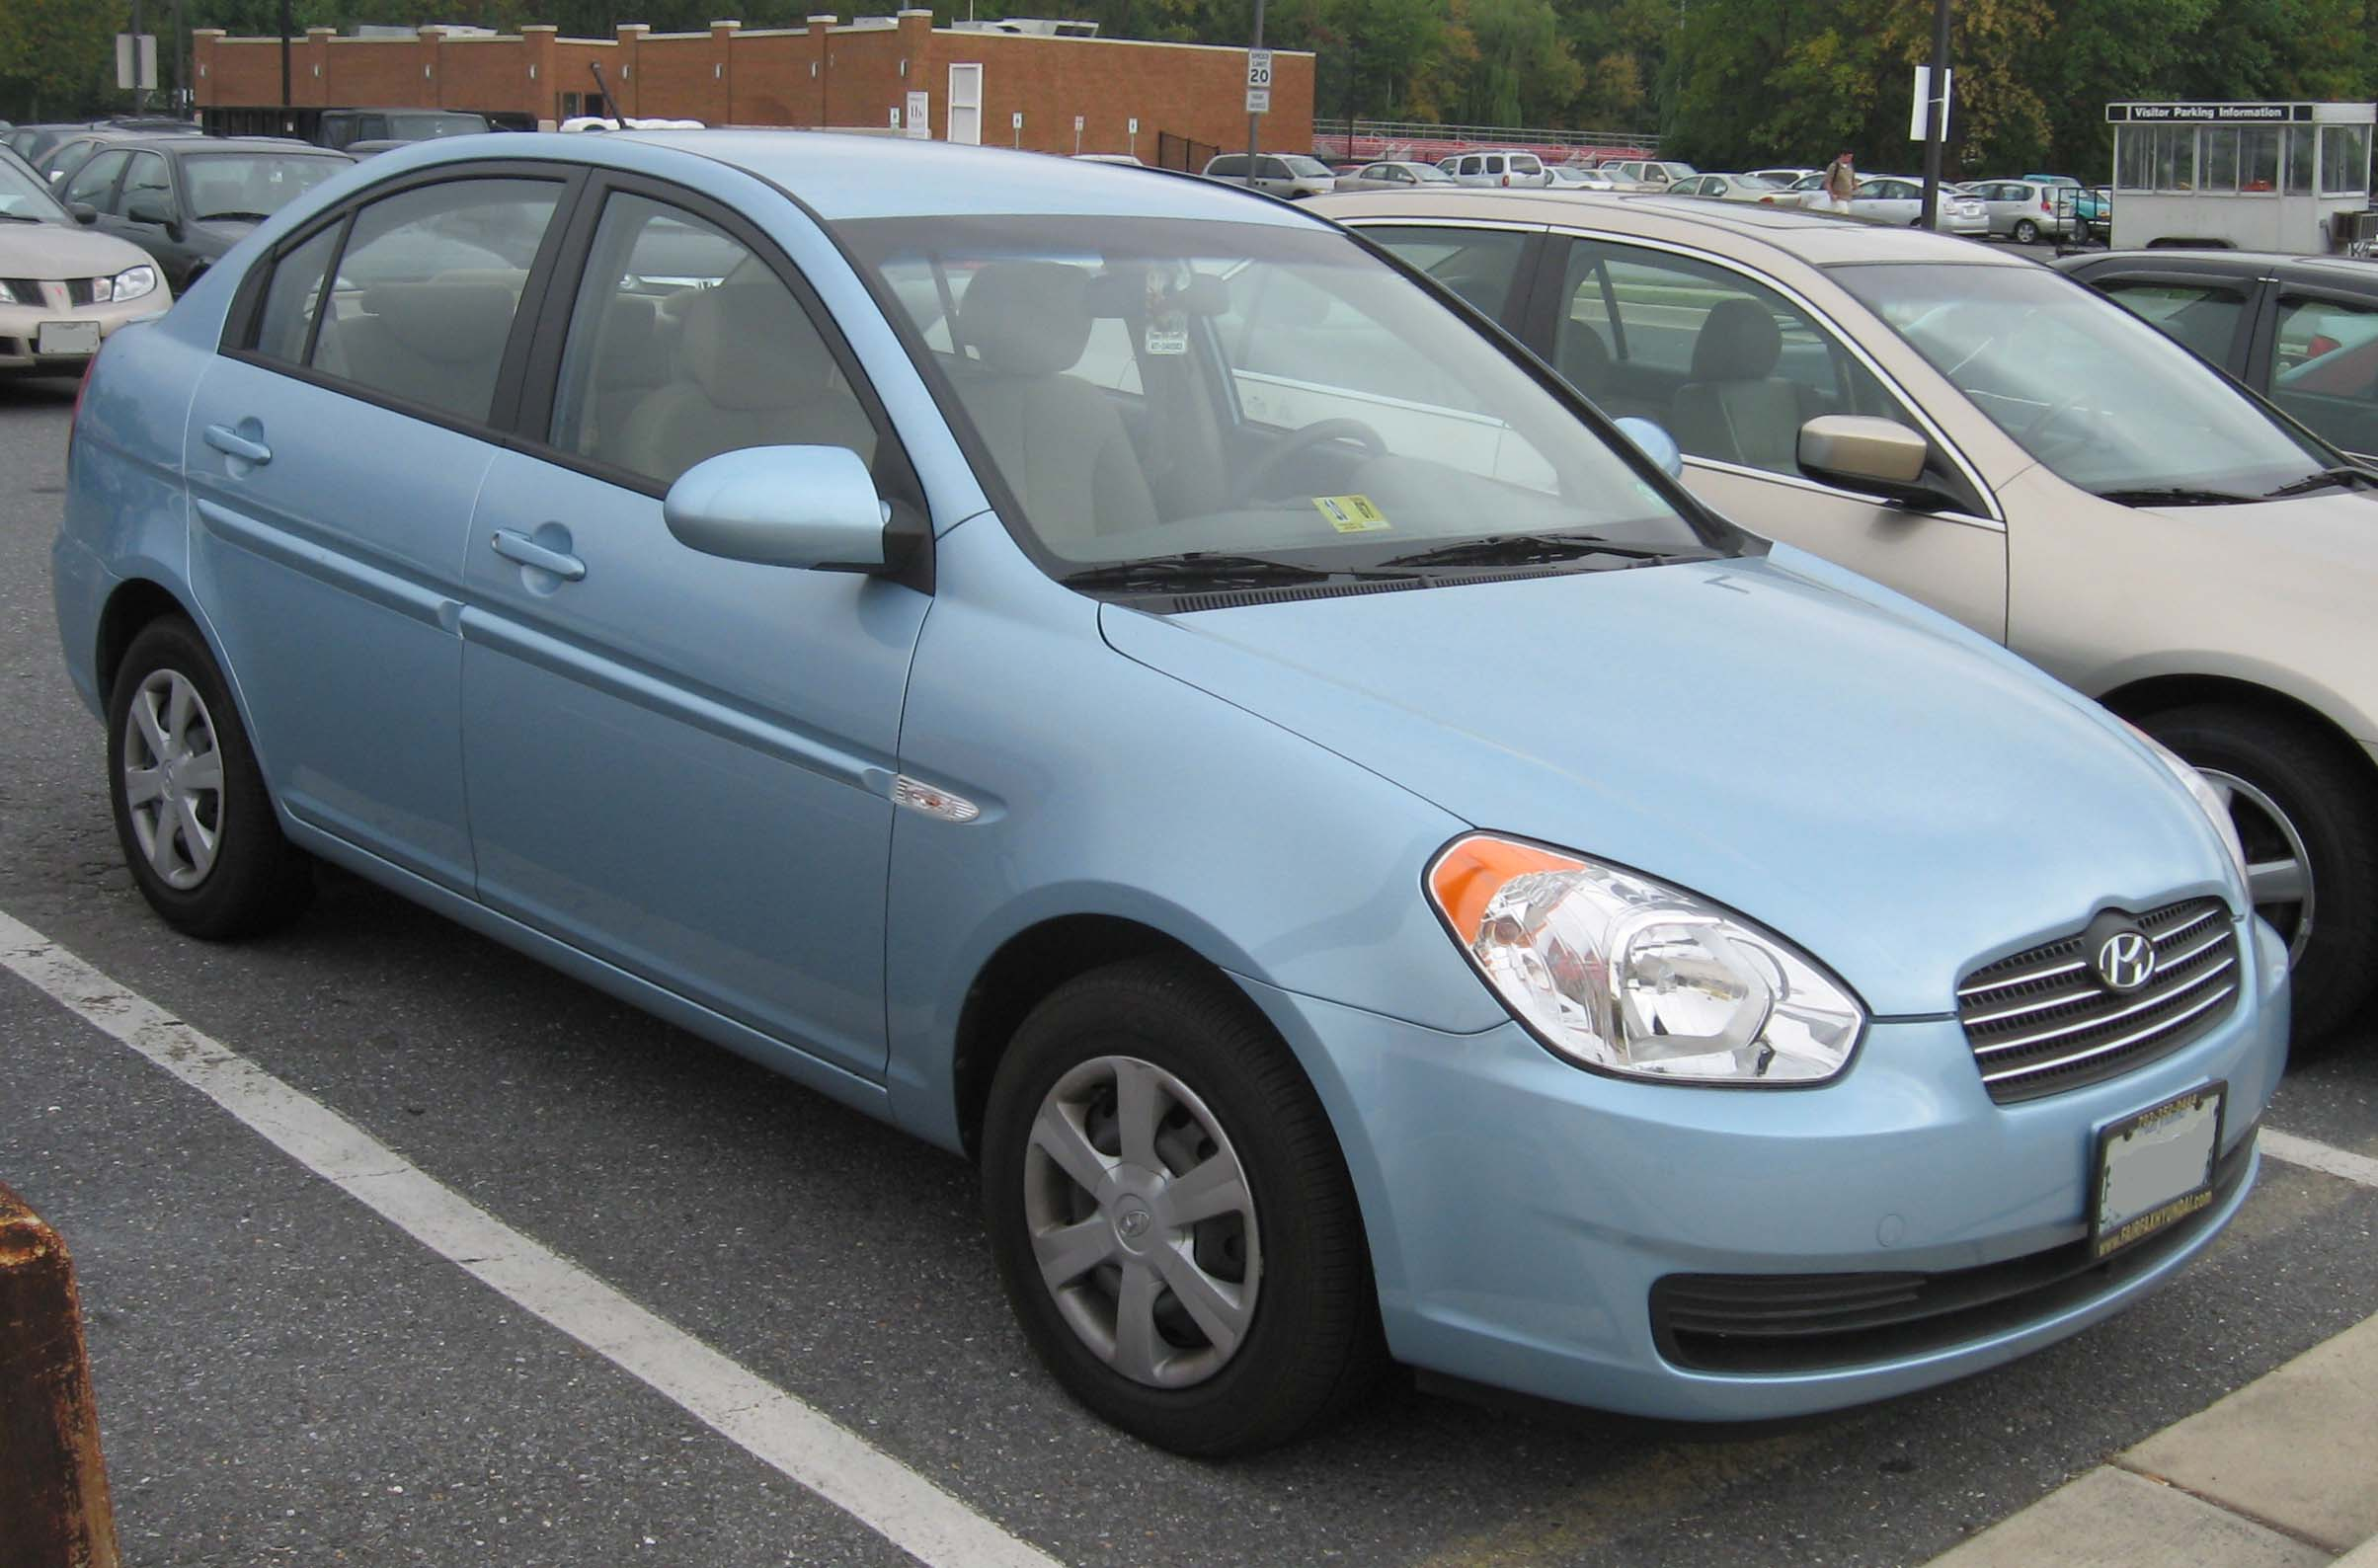 File 06 08 Hyundai Accent Jpg Wikimedia Commons